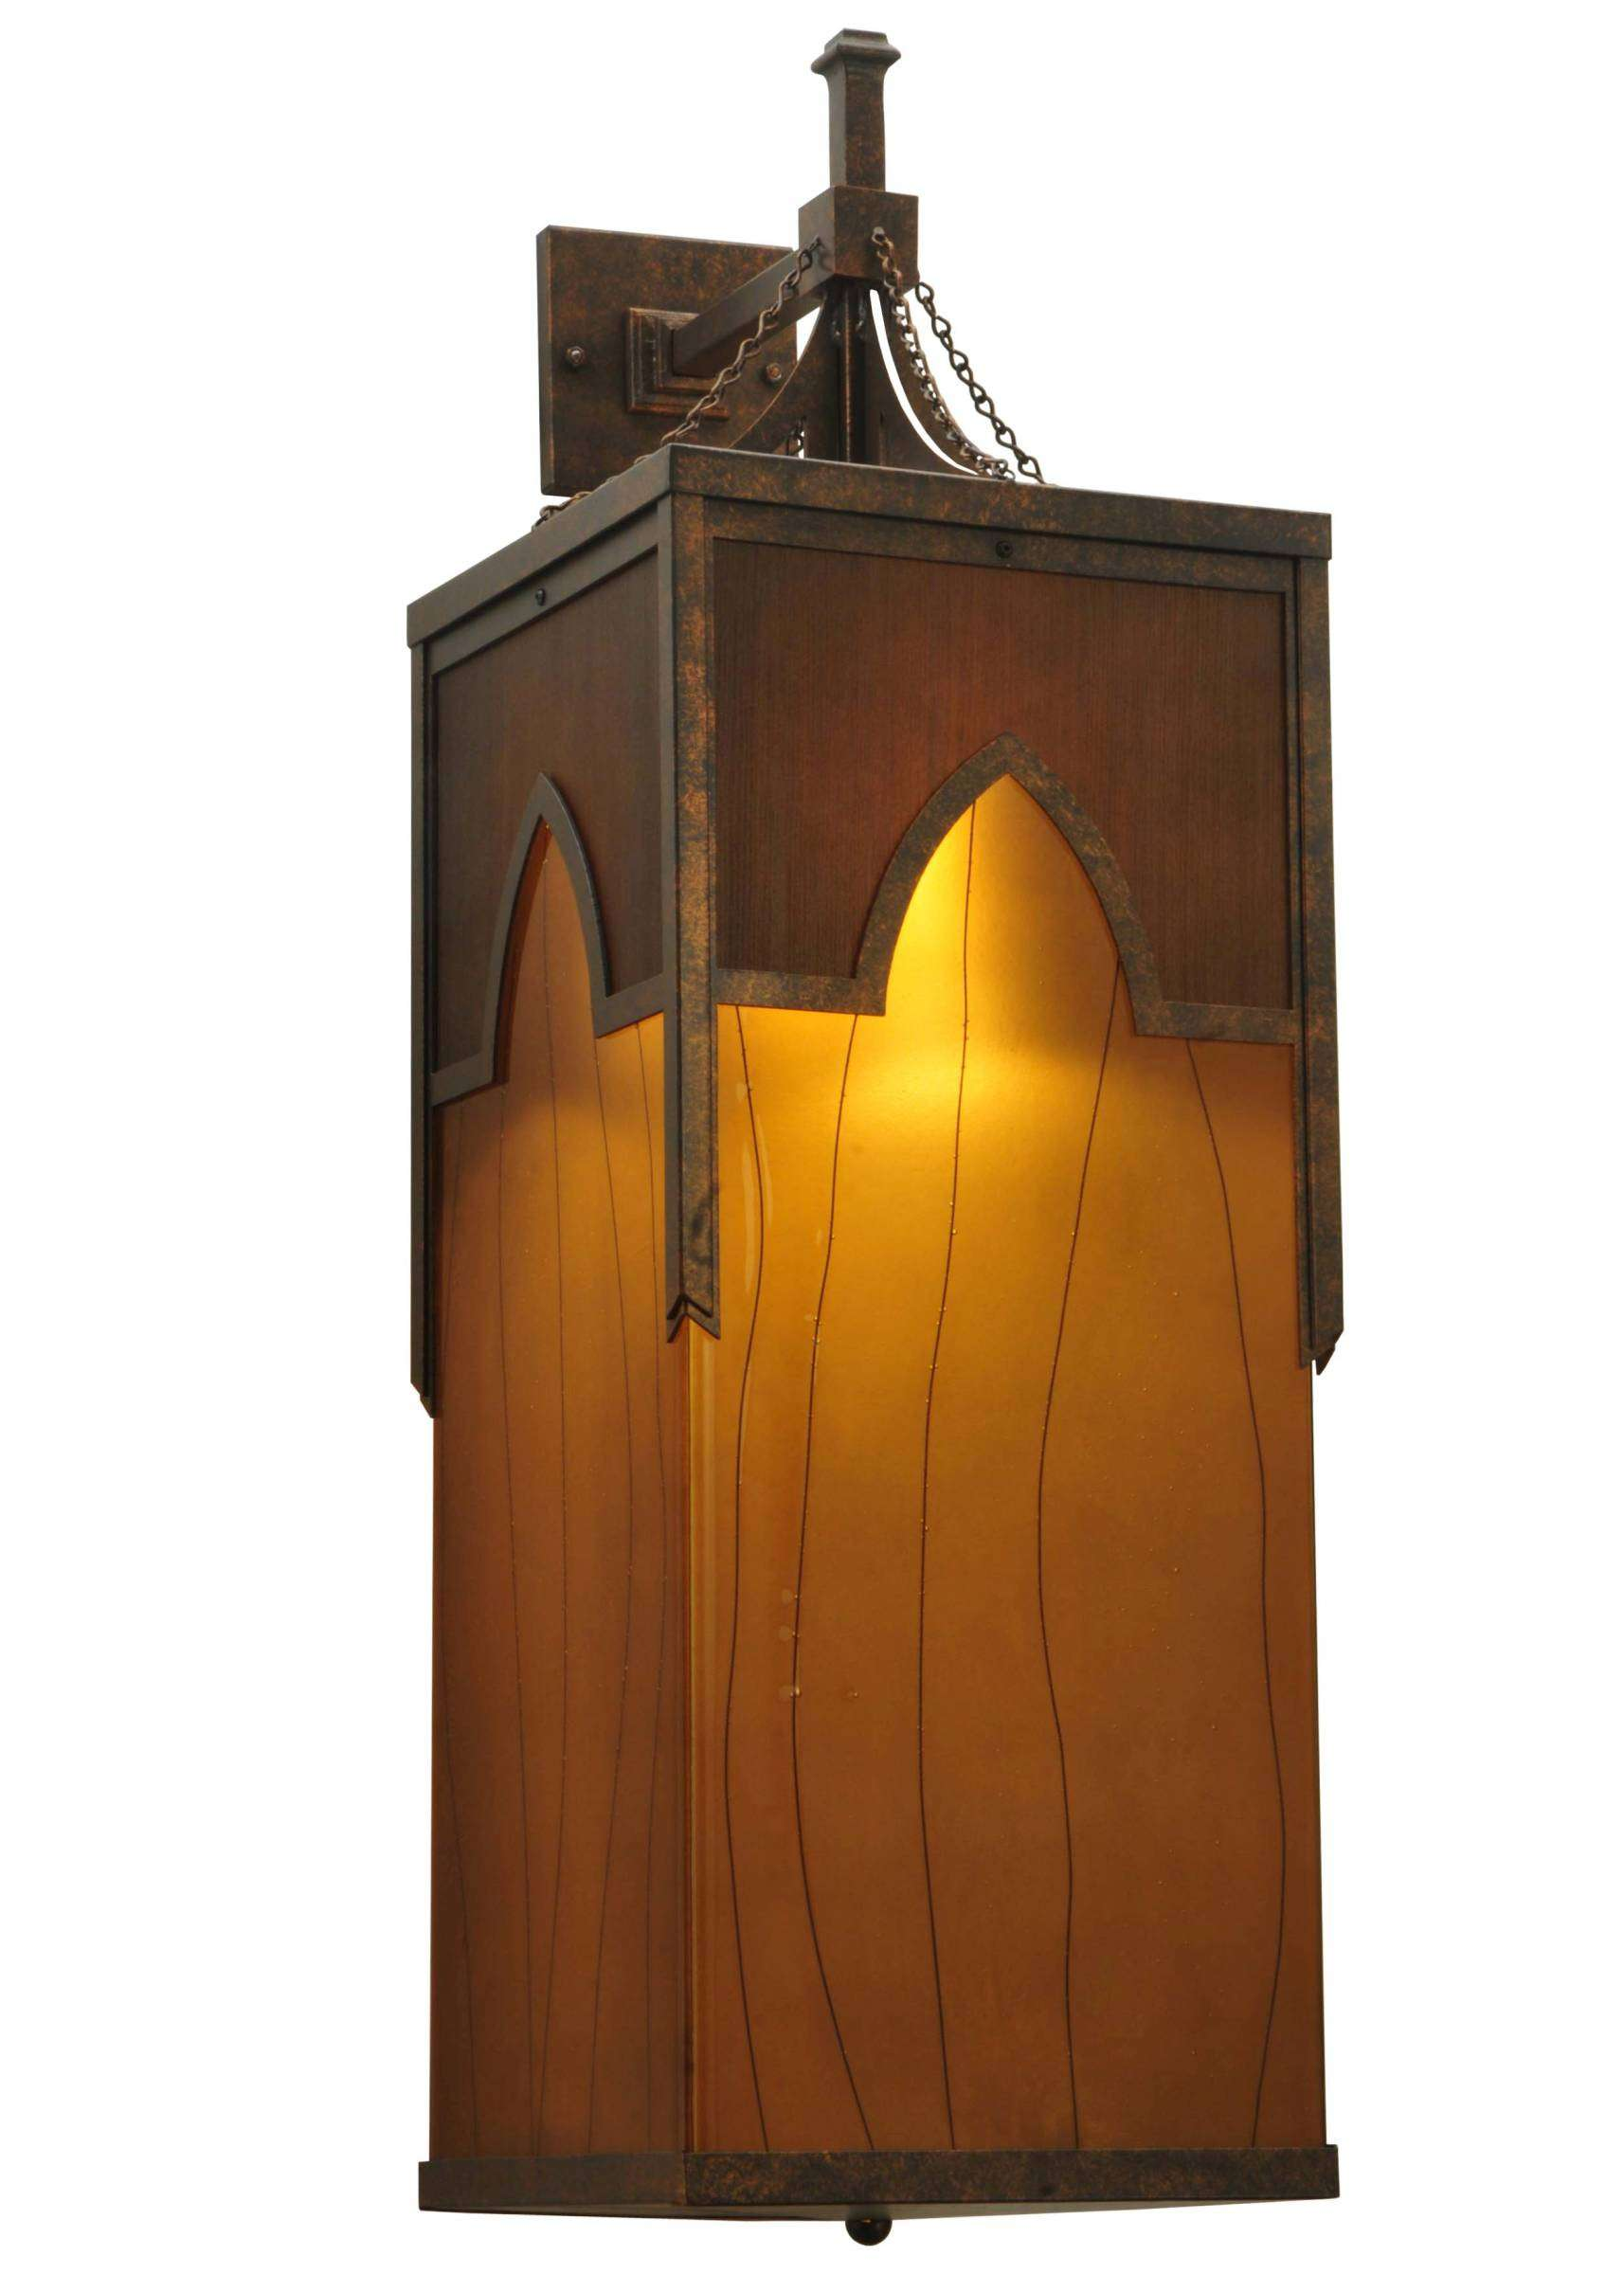 Meyda Tiffany 125515 Cordoba Fused Glass Wall Sconce in Gilded Tobacco finish